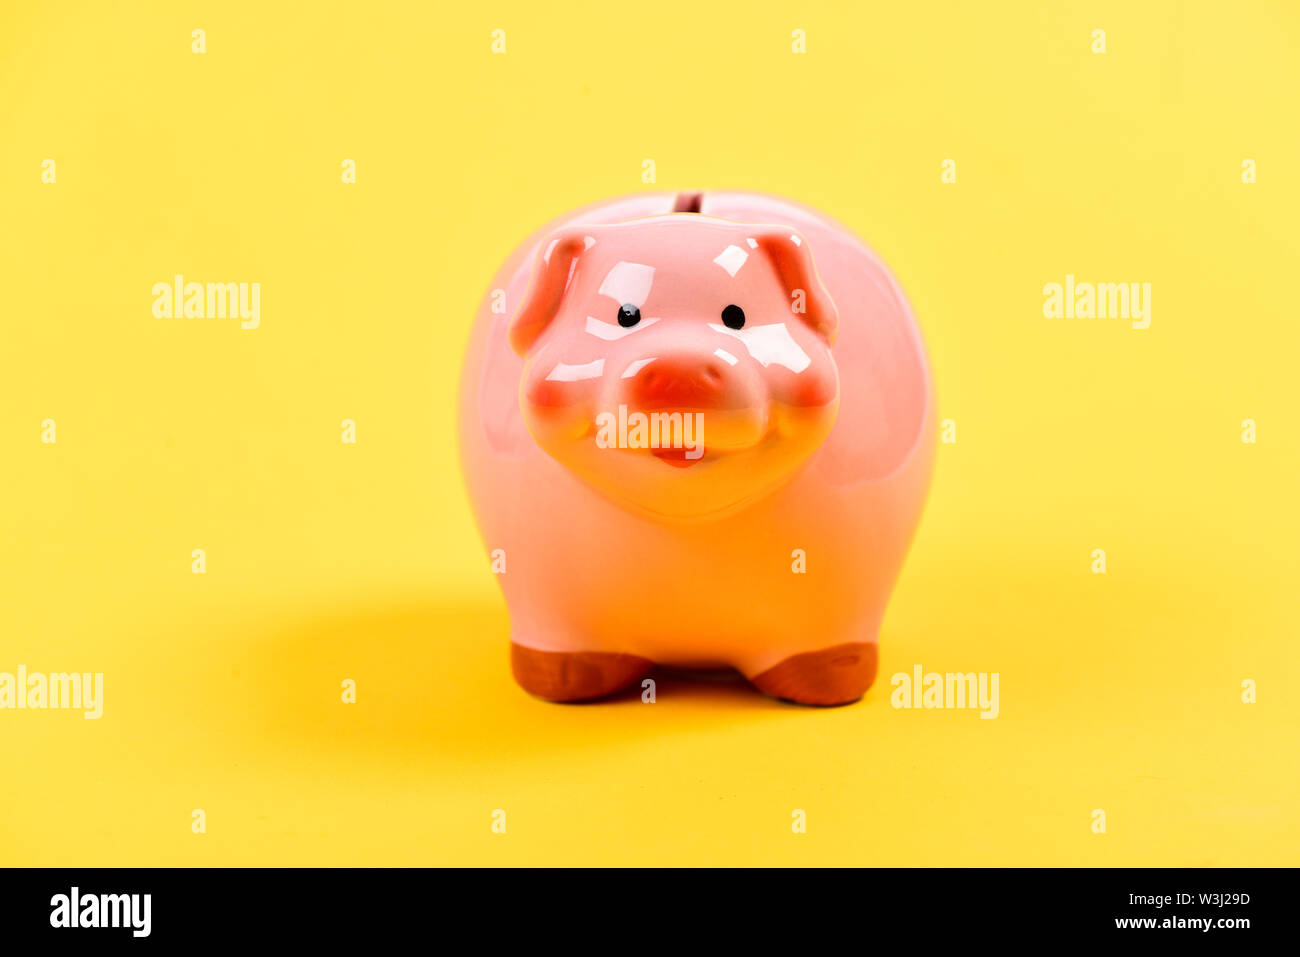 planning budget. financial problem. piggy bank on yellow background. income management. money saving. Financial education. Finances and investments bank. Financial crisis. new solutions. - Stock Image